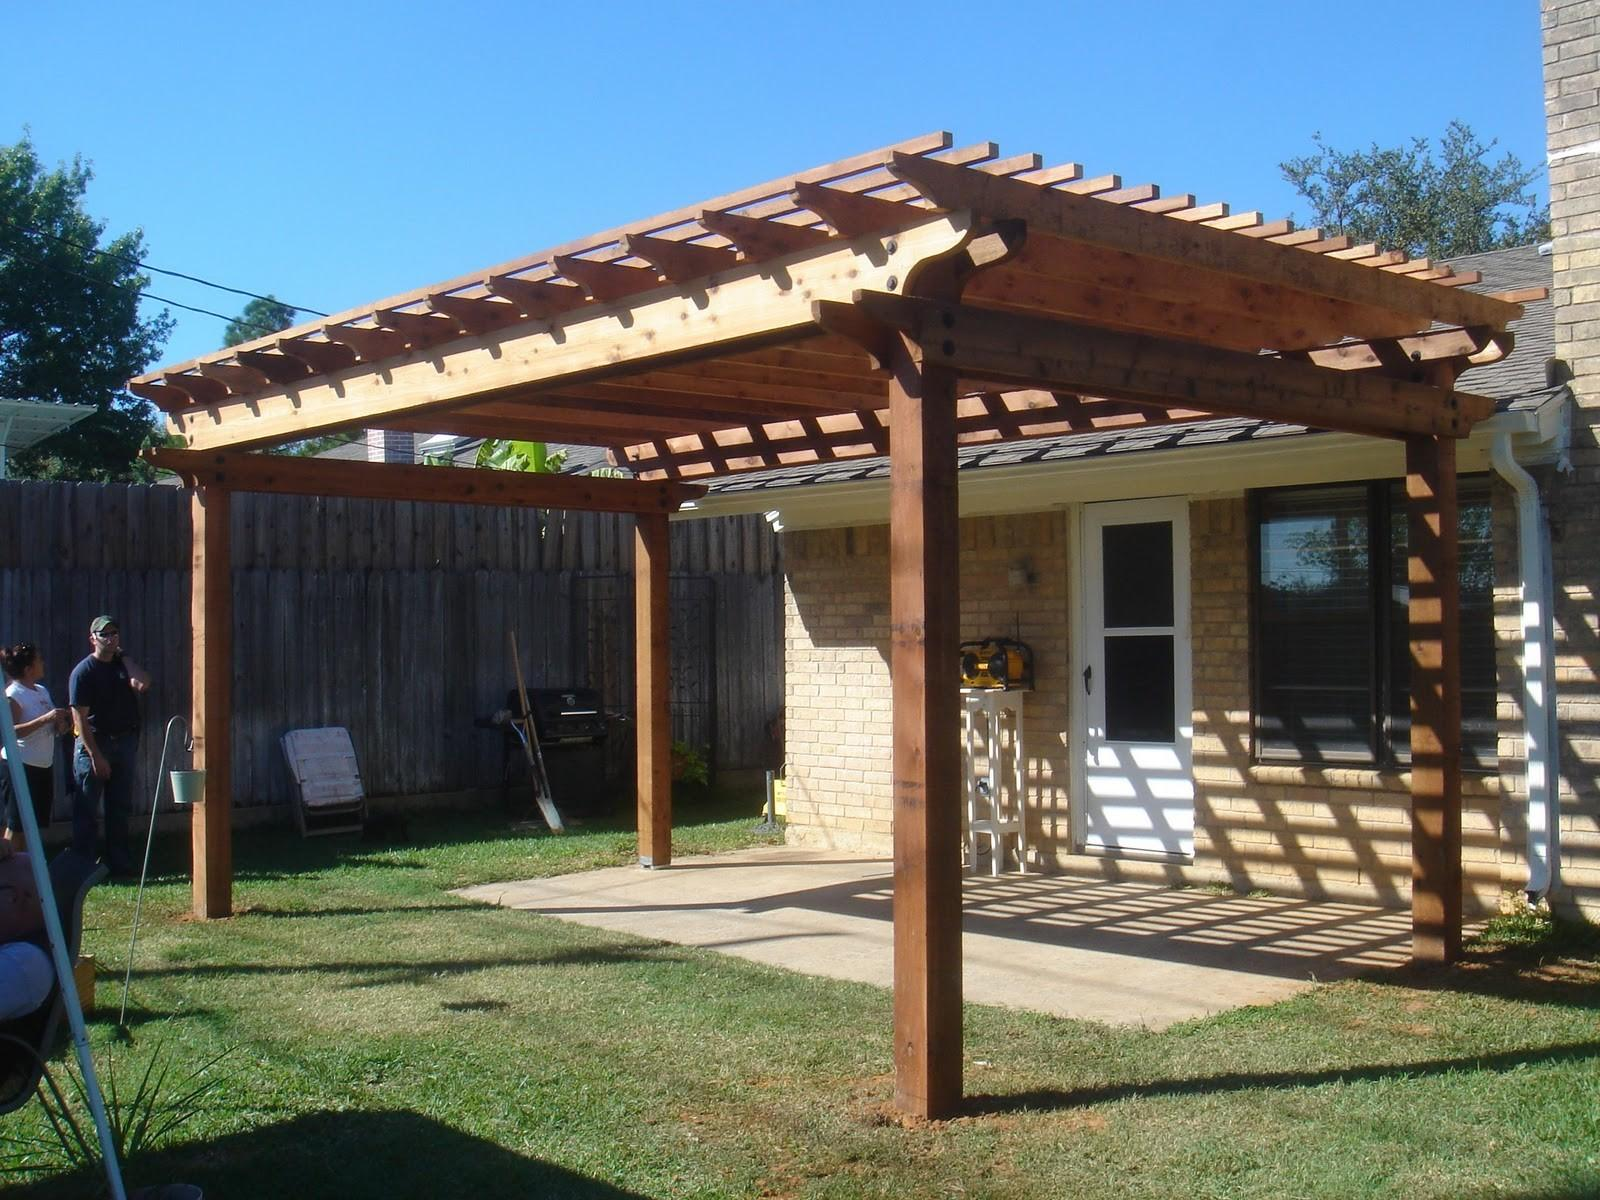 Crazy Gazebo Pergola Design Ideas That Will Make Your Life So Much